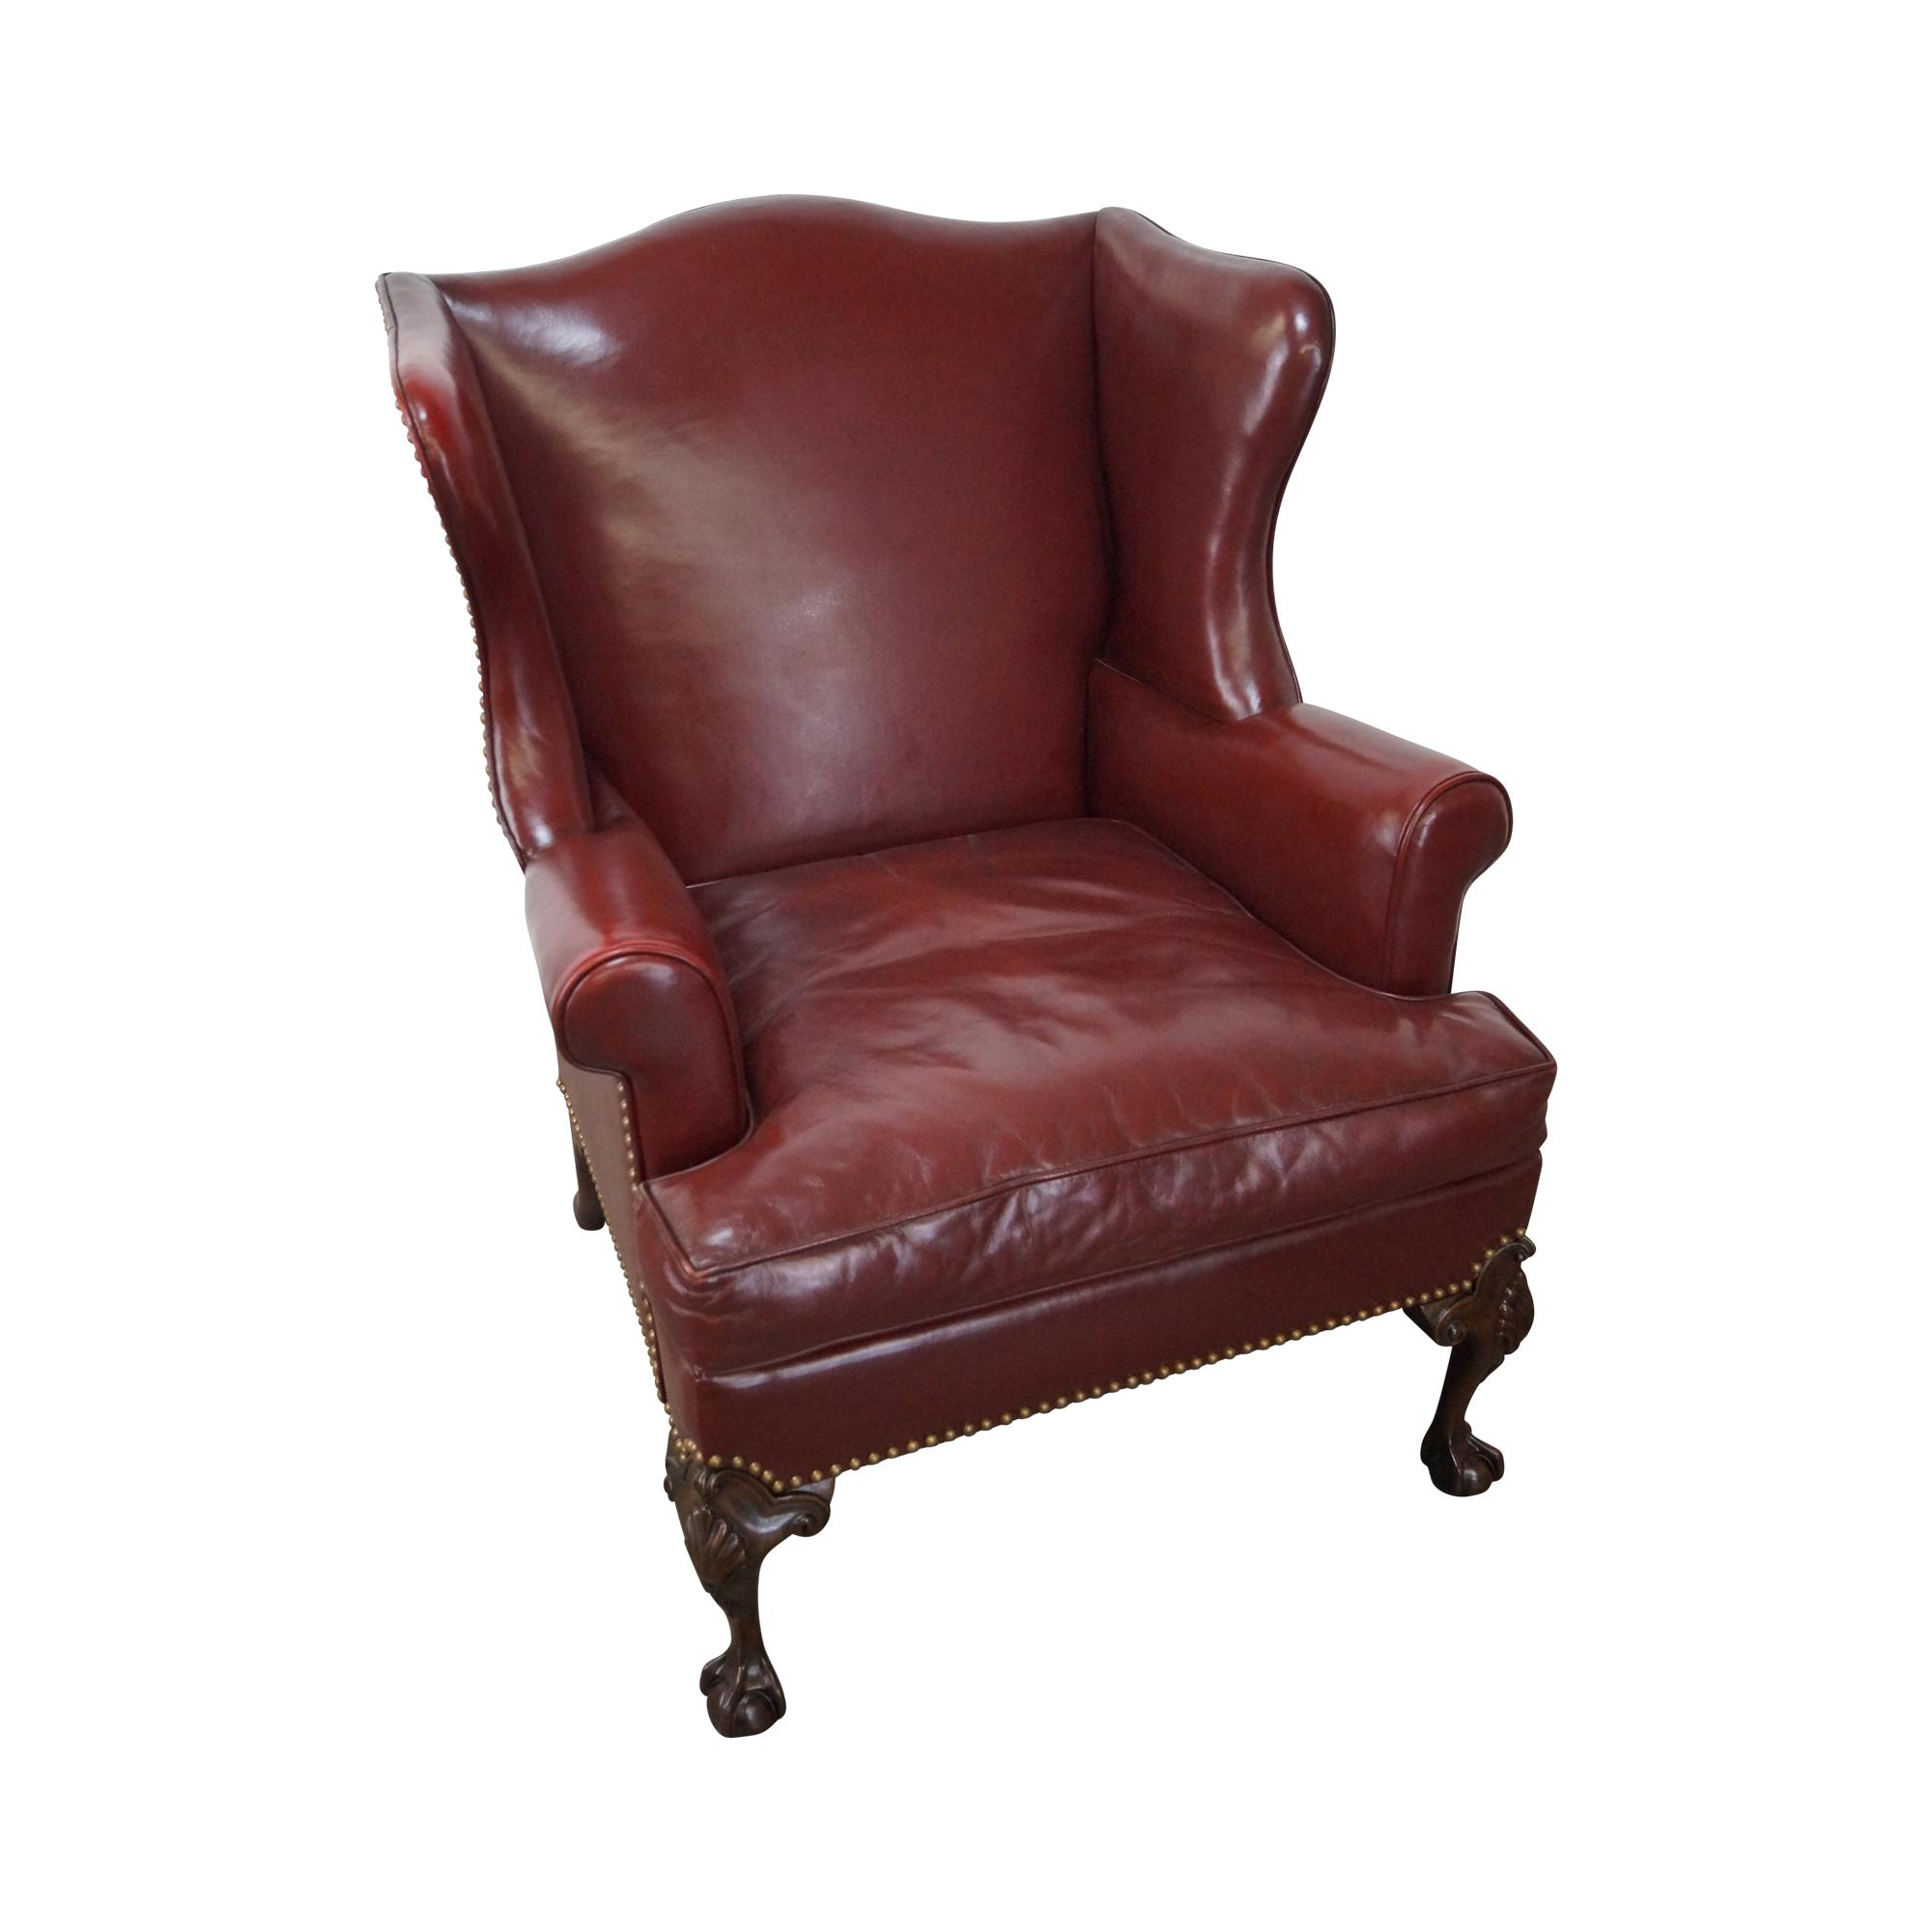 oxblood leather wing chair zero gravity tokopedia chippendale mahogany chairish